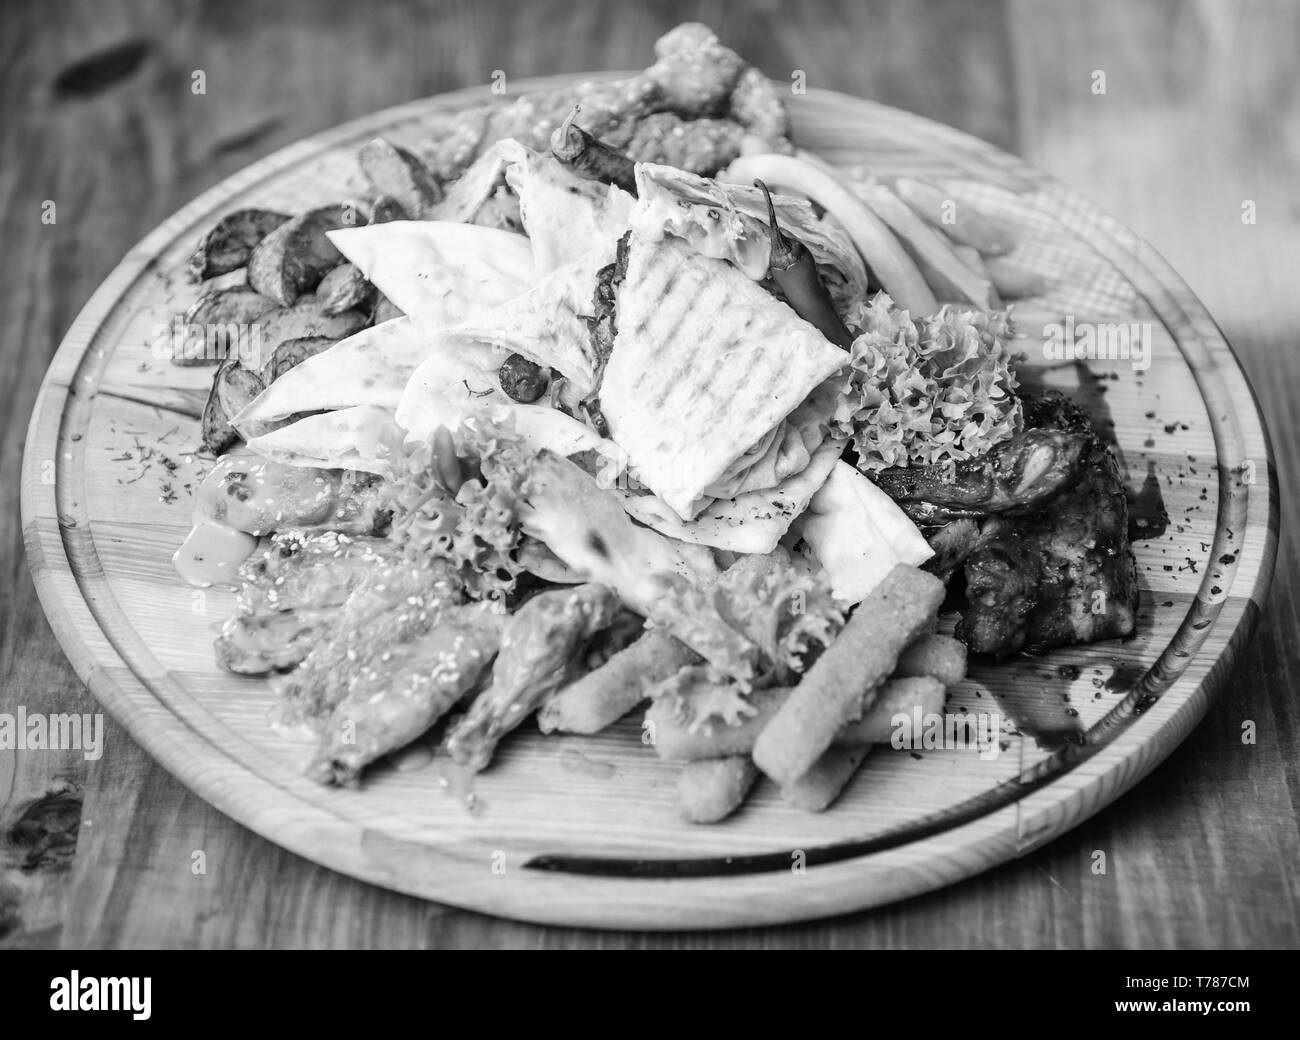 Meat snack for group friends. Tasty delicious snacks. Restaurant food. Snack for beer. Wooden board french fries fish sticks burrito and meat steak served with salad. Enjoy your meal. Pub menu snack. - Stock Image